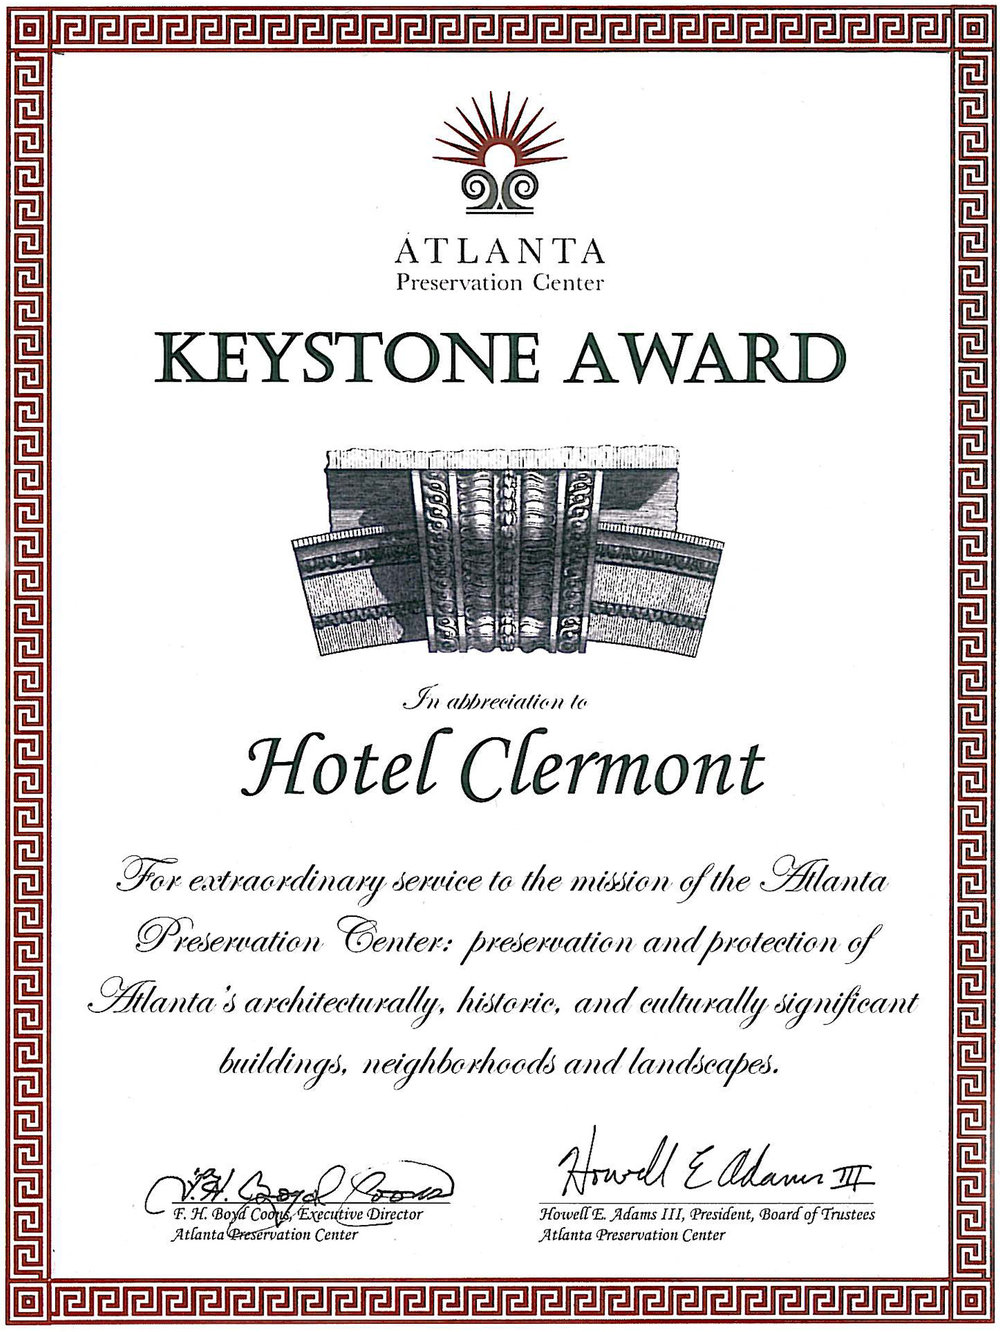 2018-10-18_Atlanta Preservation Center_Keystone Award.jpg